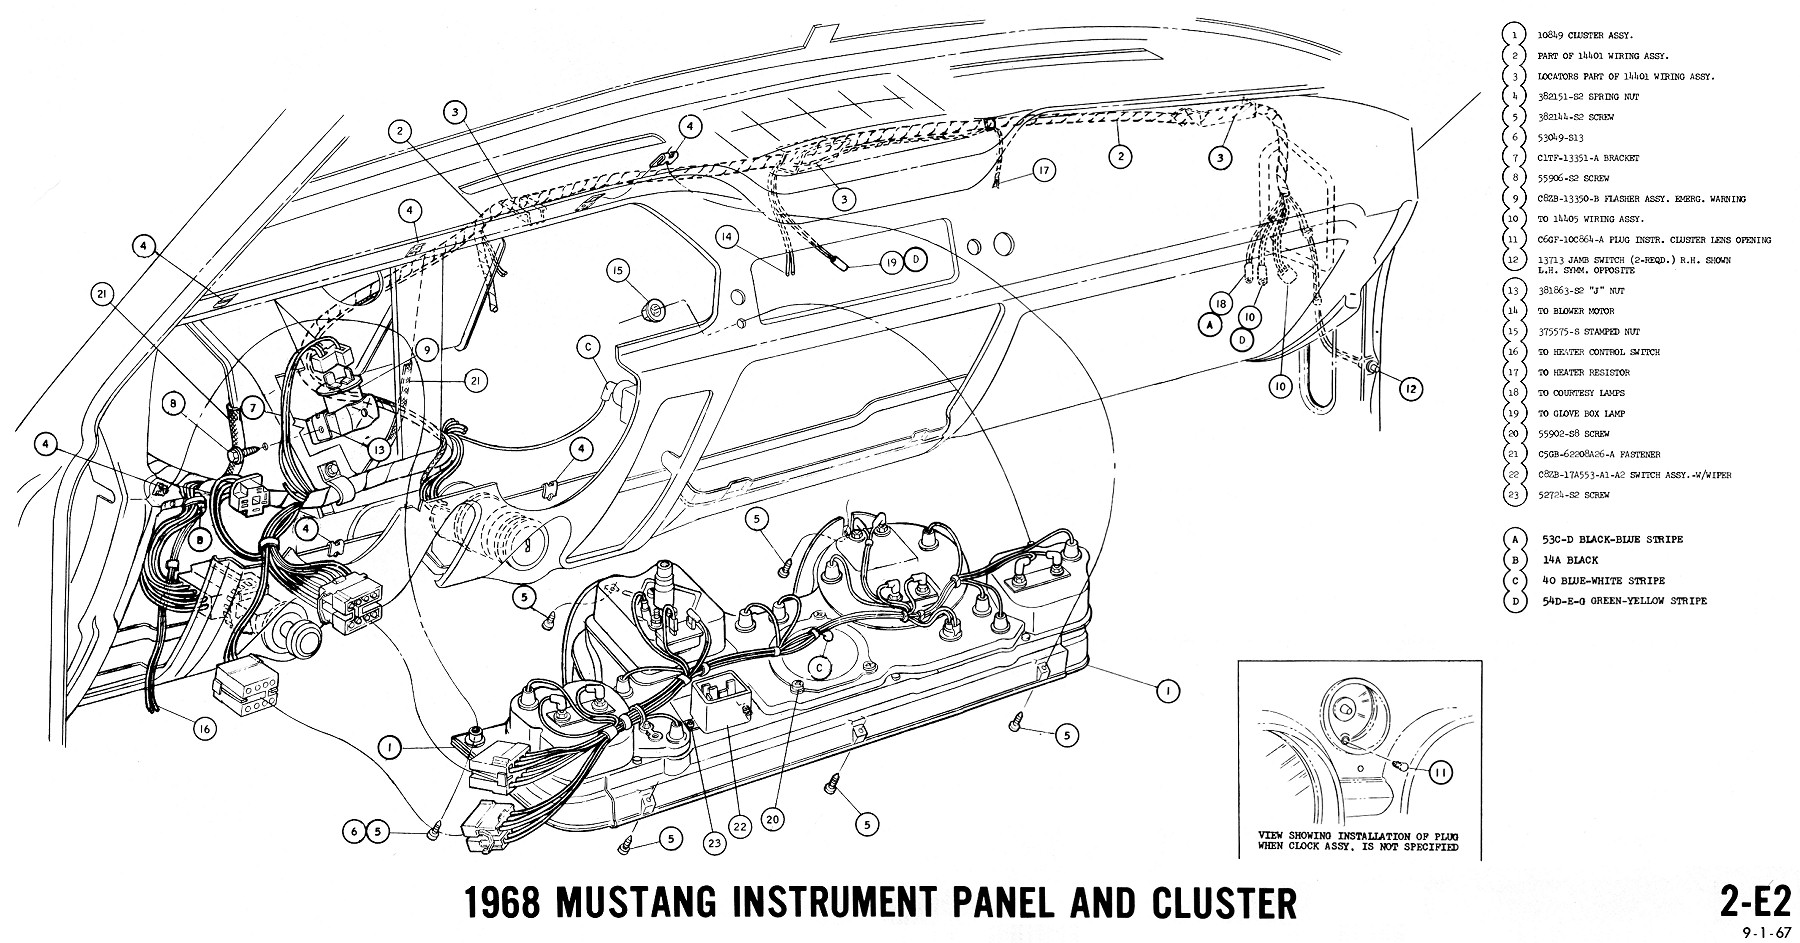 1968 mustang tach wiring diagram 1968 ford mustang wiring diagram e4 wiring diagram  1968 ford mustang wiring diagram e4